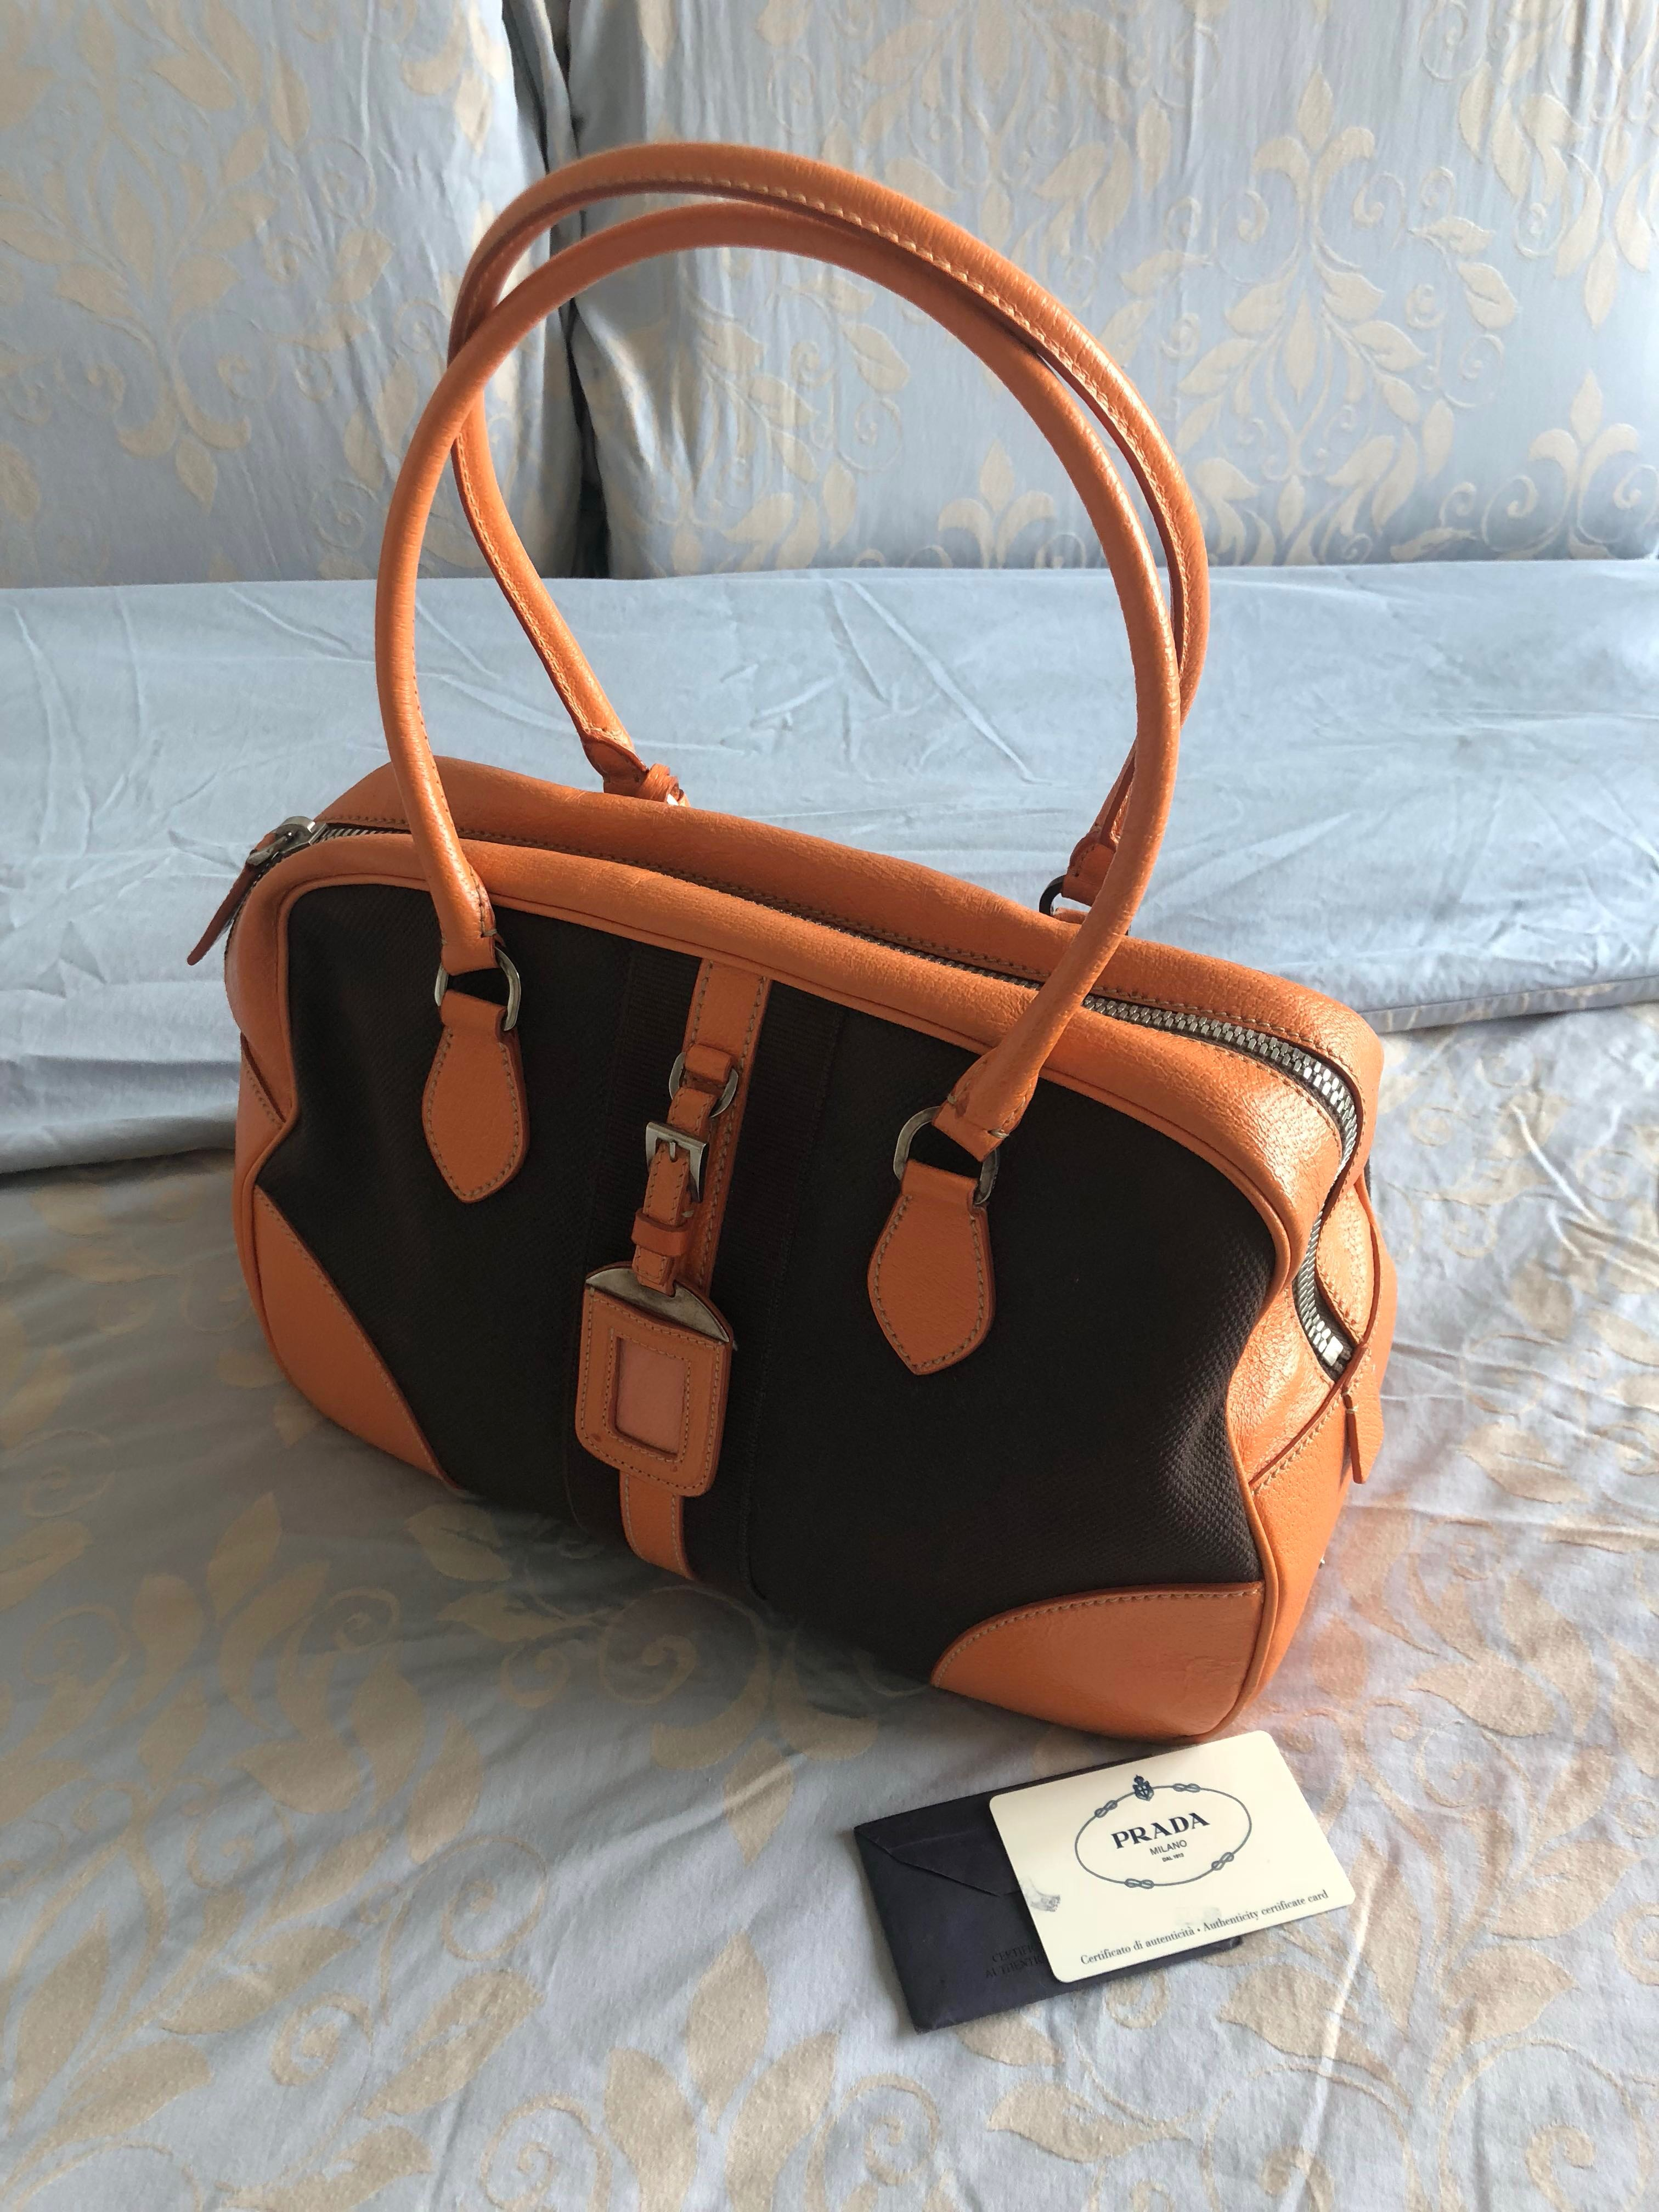 e1a66c30ee Vintage Authentic Prada Bauletto Bowling Stripe Evans + Orange Bag (with  receipt of purchase)